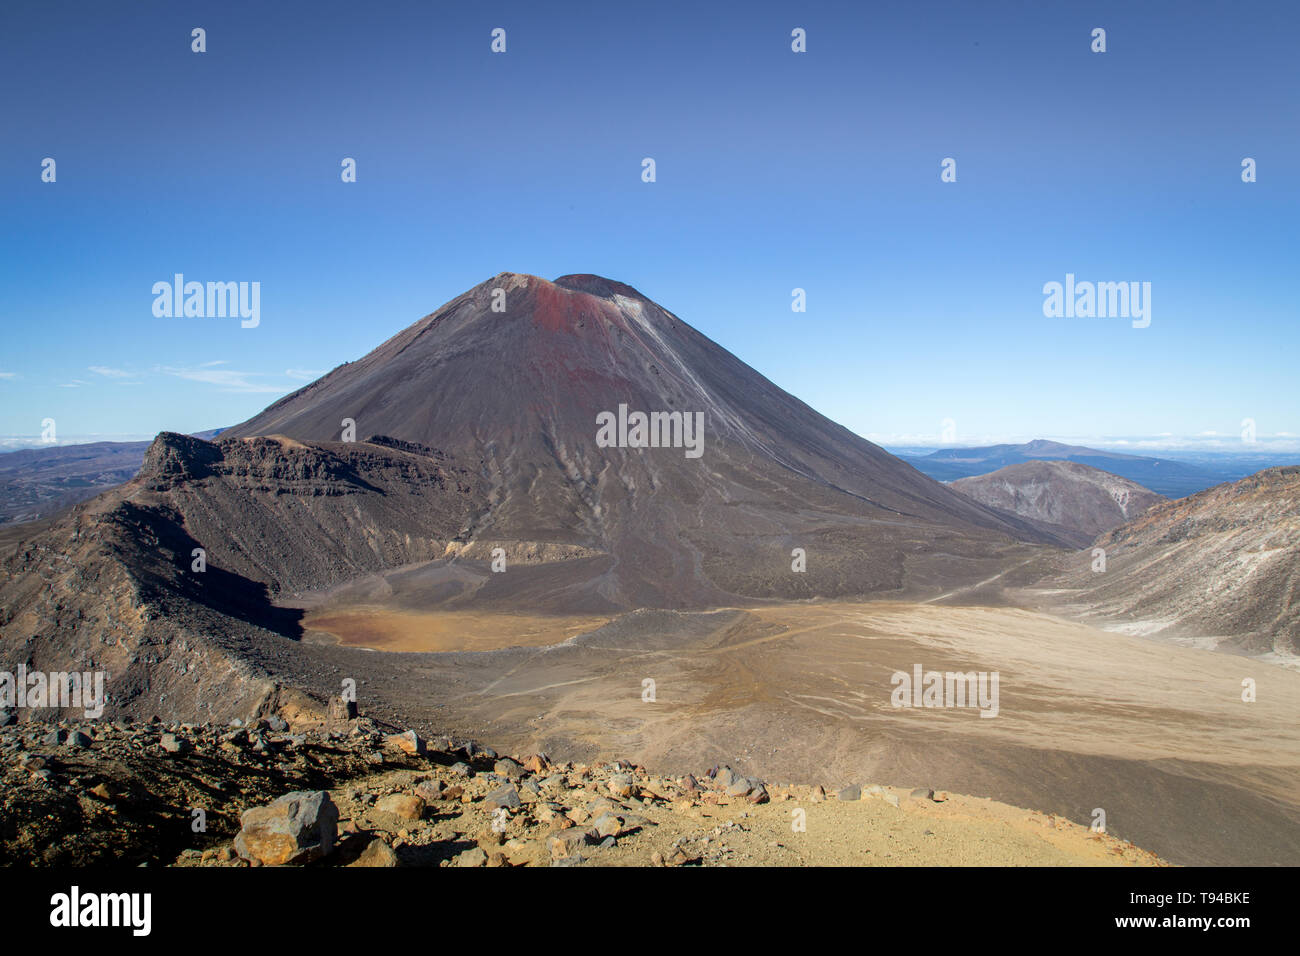 Mount Ngauruhoe in New Zealand - Stock Image